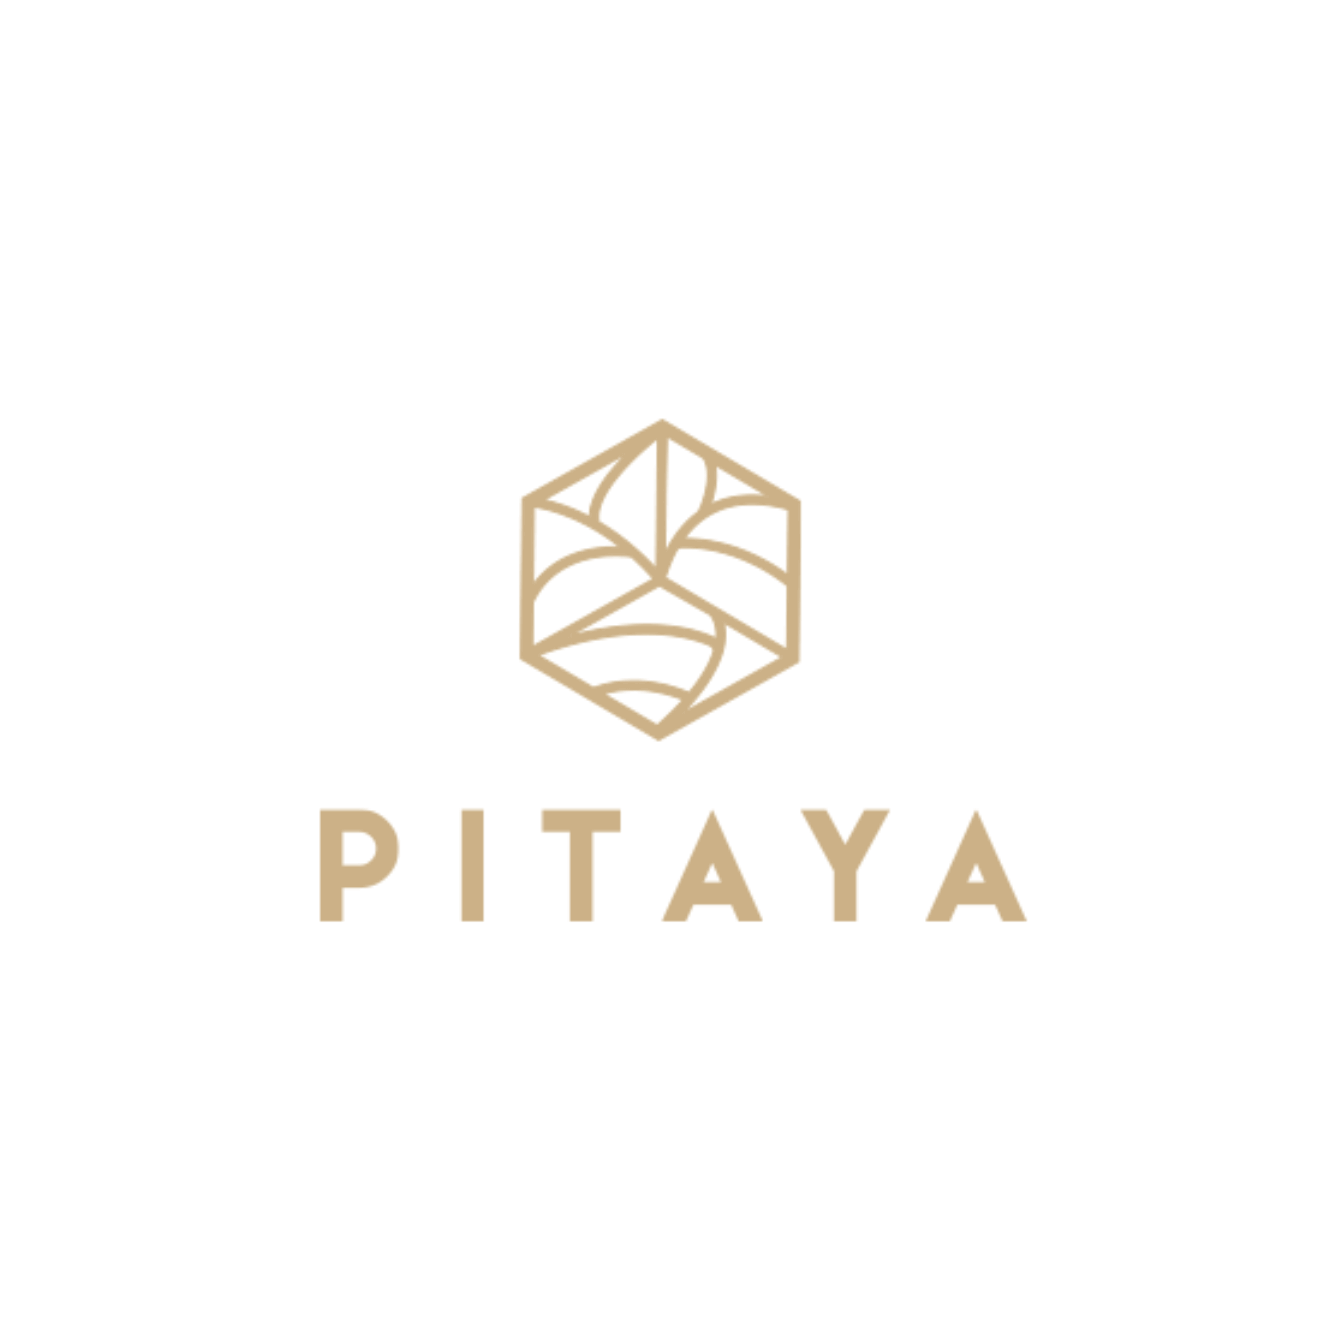 Pitaya - Booking platform for team-building experiences